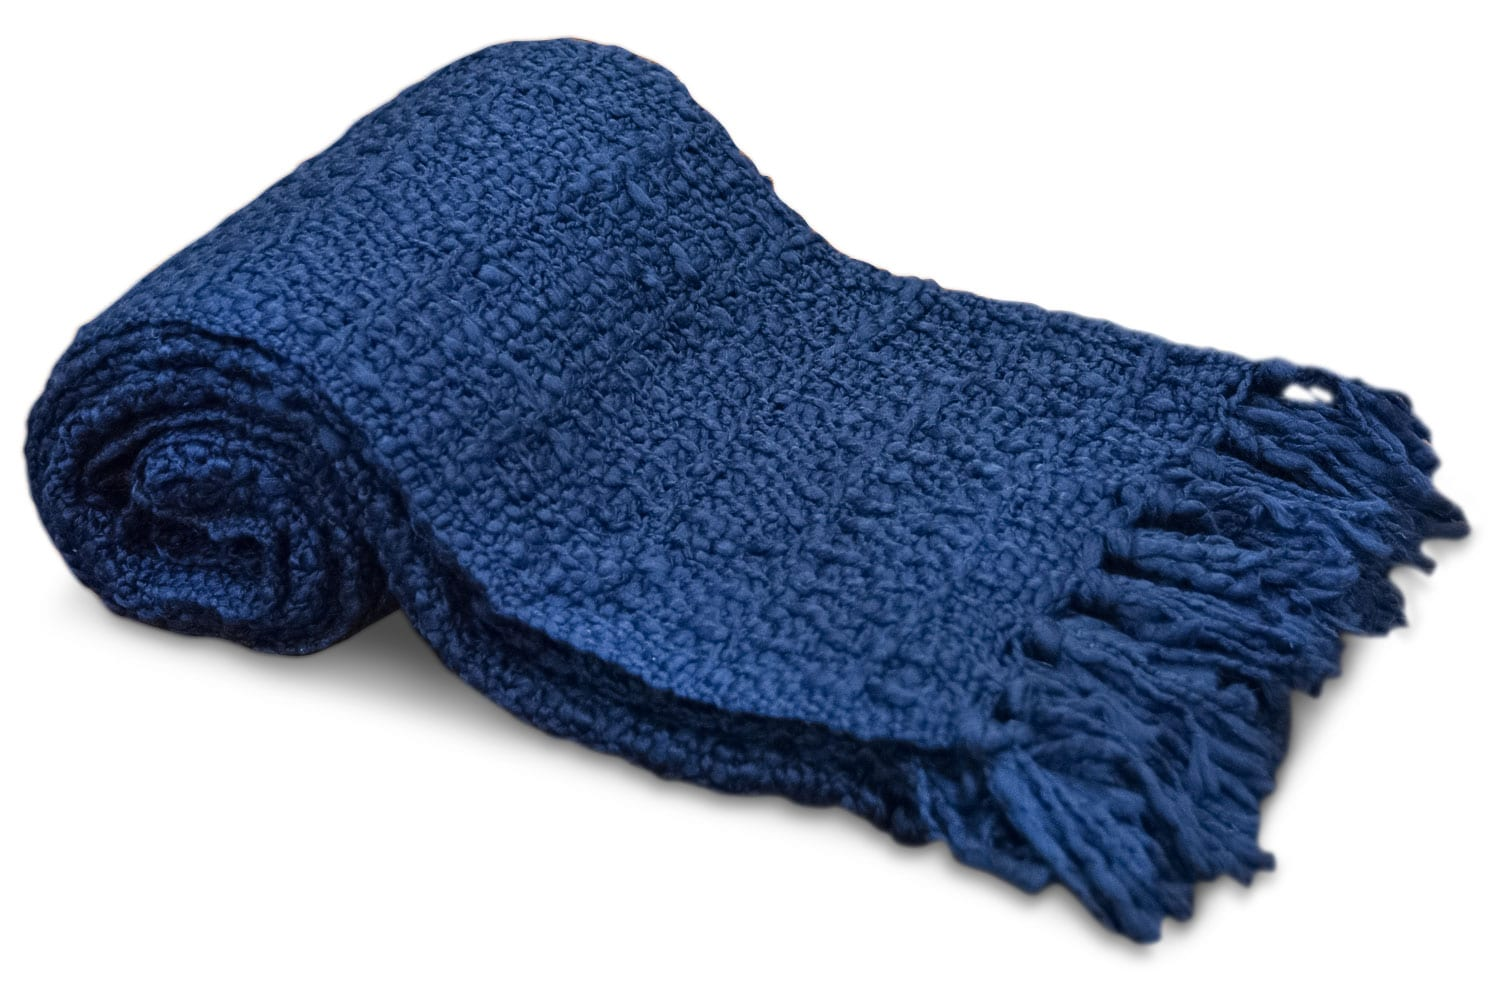 Knit Throw with Fringe – Navy